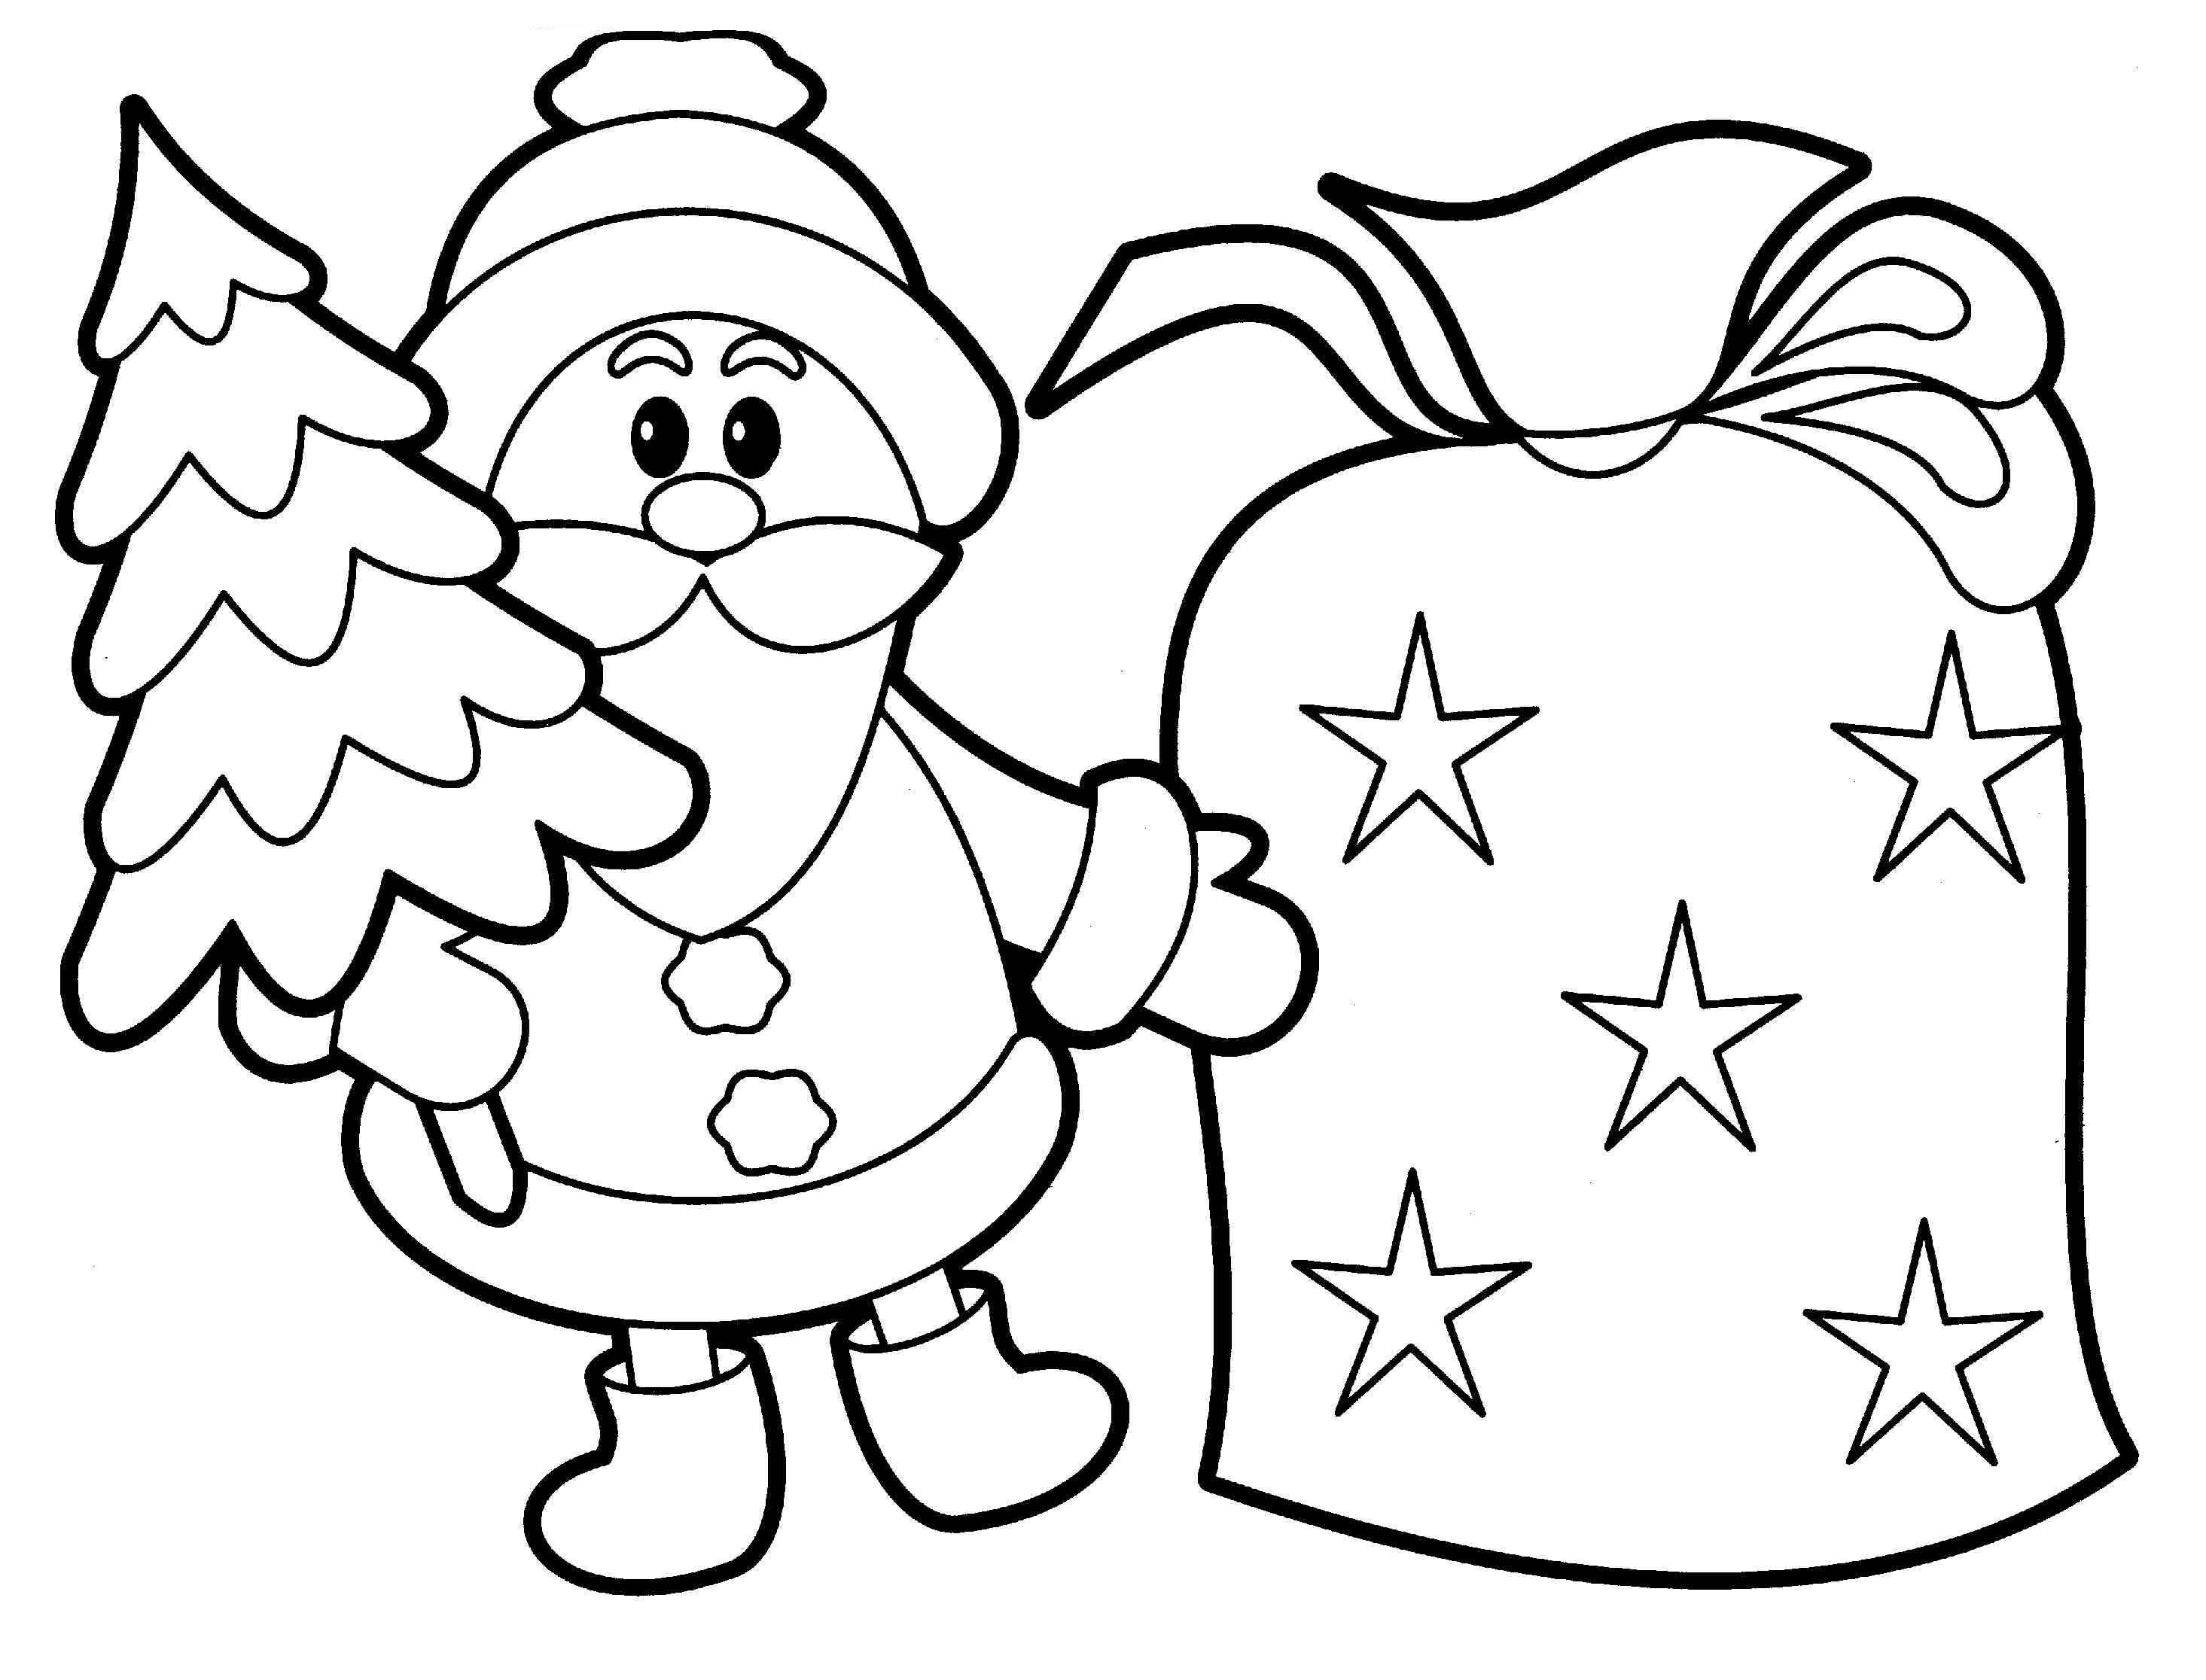 christmas coloring pages for preschoolers christmas coloring pages for preschoolers best coloring pages coloring preschoolers christmas for